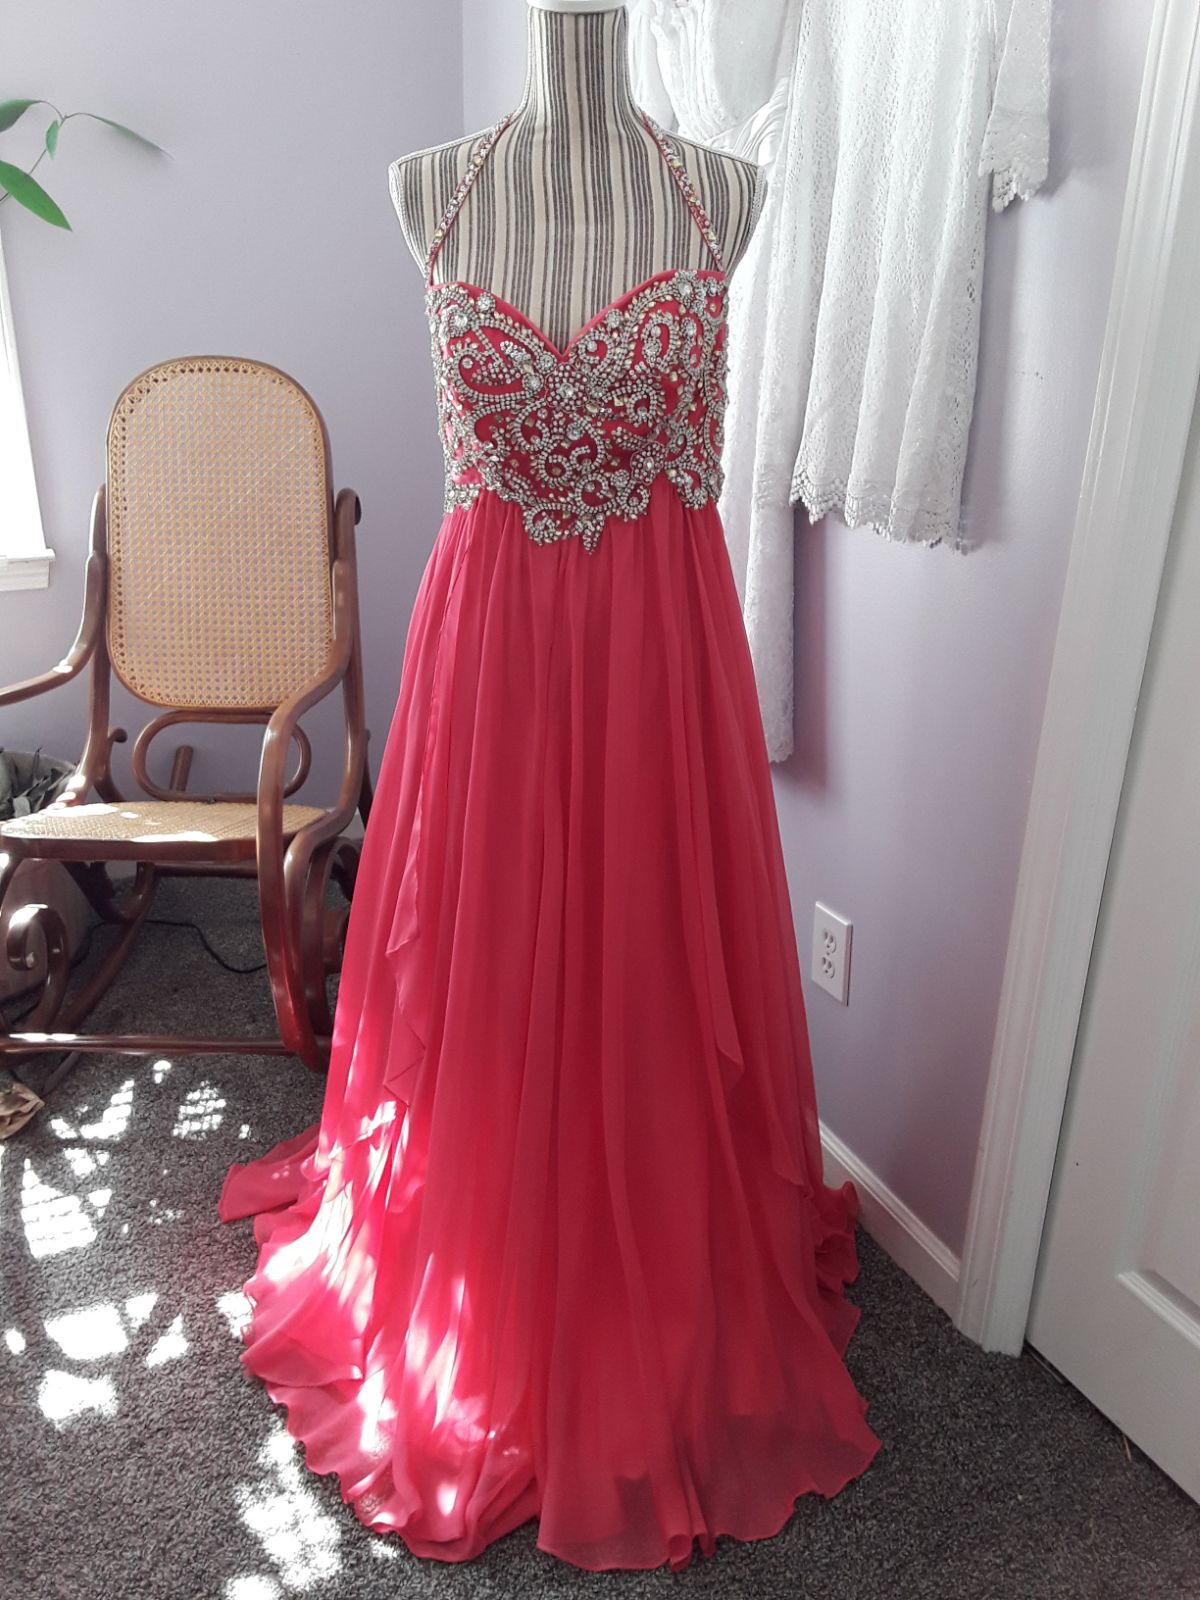 Prom dress stunning coral with bling